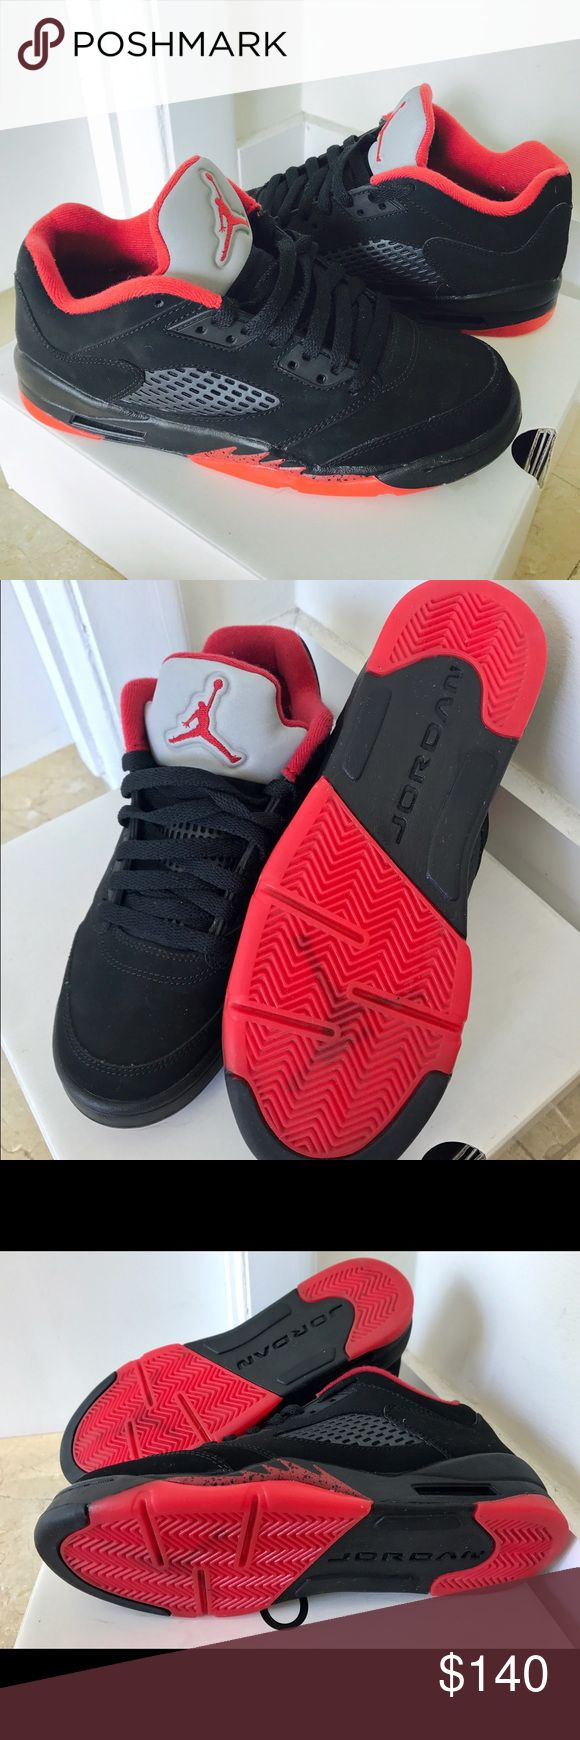 "Air Jordan Retro 5s Low Top Sneakers ! LIKE NEW! Air Jordan Retro 5 ""Alternate 90"" Black and Red! These shoes are in perfect condition!! I wore them ONCE! Bought them at Flight Club in NYC for $180. They've been in a box and well taken care of ever since! This shoe is also sold out on all websites. Considering offers. They are a size 6 in men which means they fit a regular size 7.5-8 in women! Jordan Shoes Sneakers"